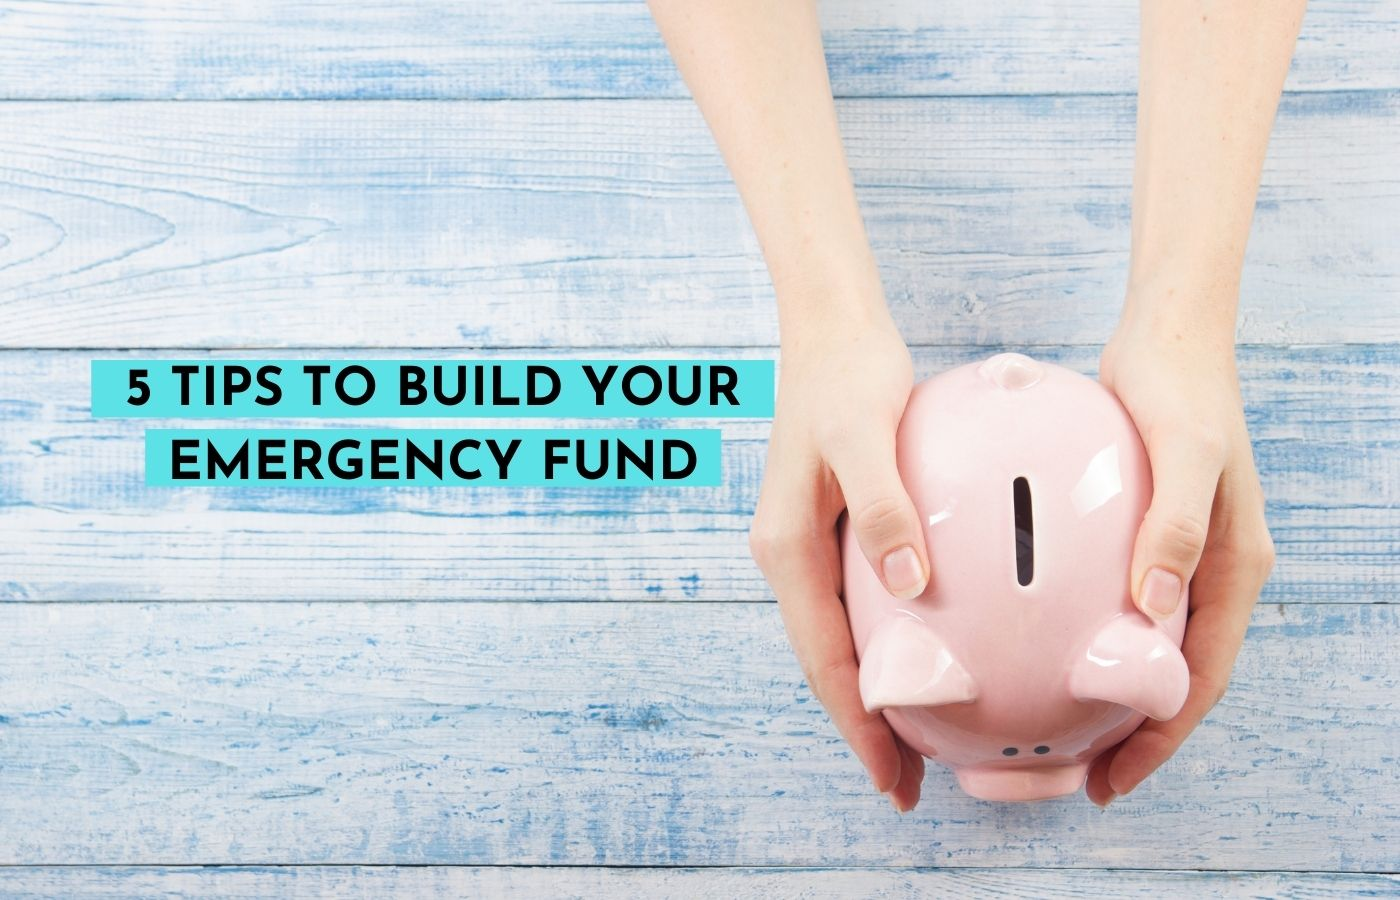 5 Tips to Build Your Emergency Fund Fast - My Financial Hill